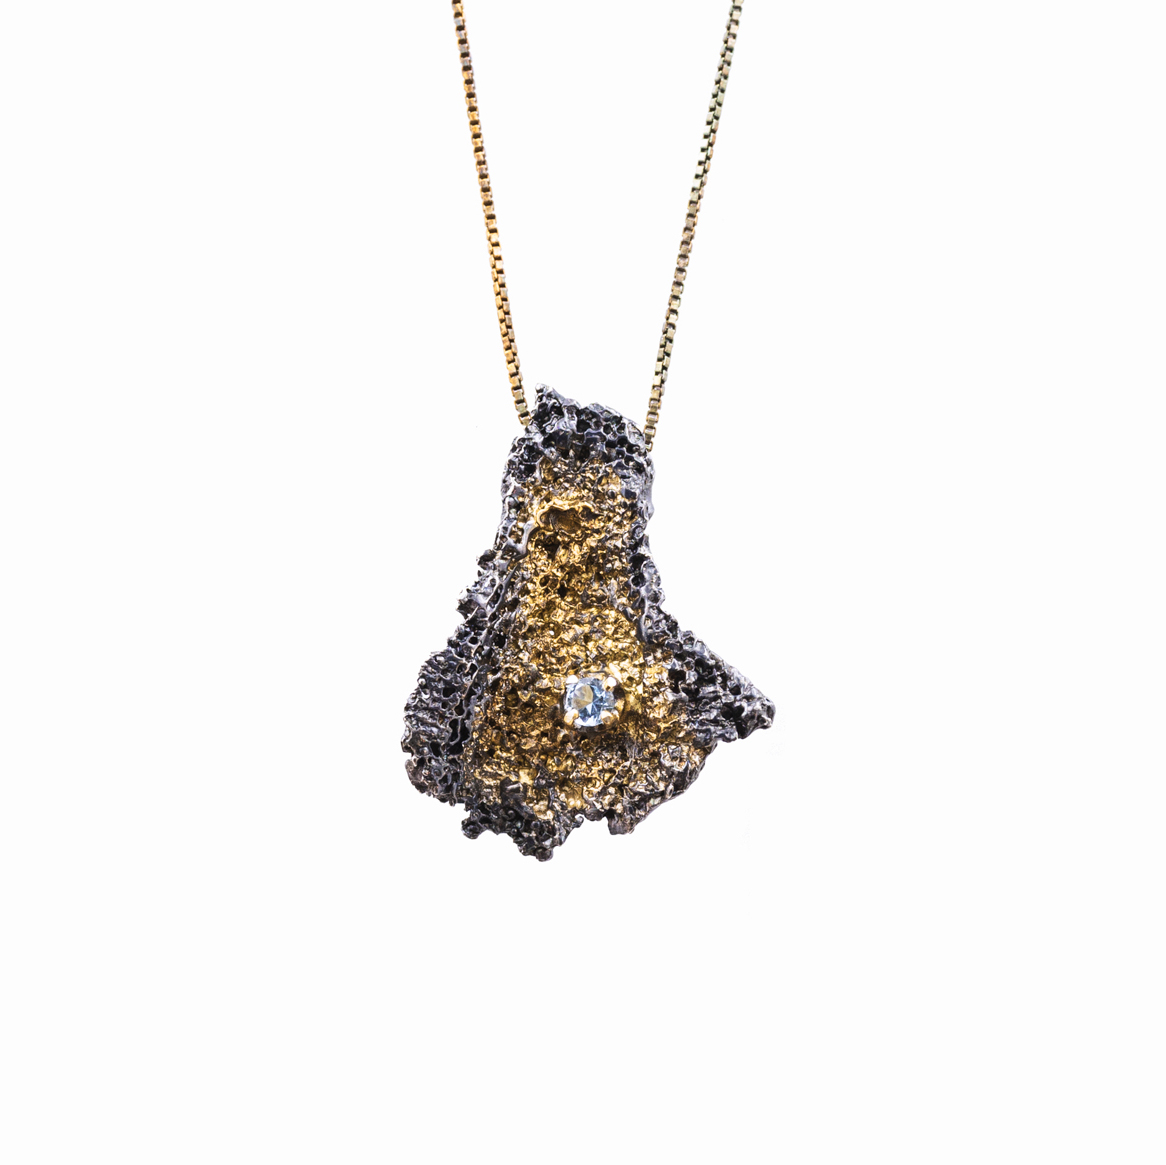 Graceful Inner Islands / Inner Island Pendant : Sterling silver, aquamarine, gold vermeil, patina